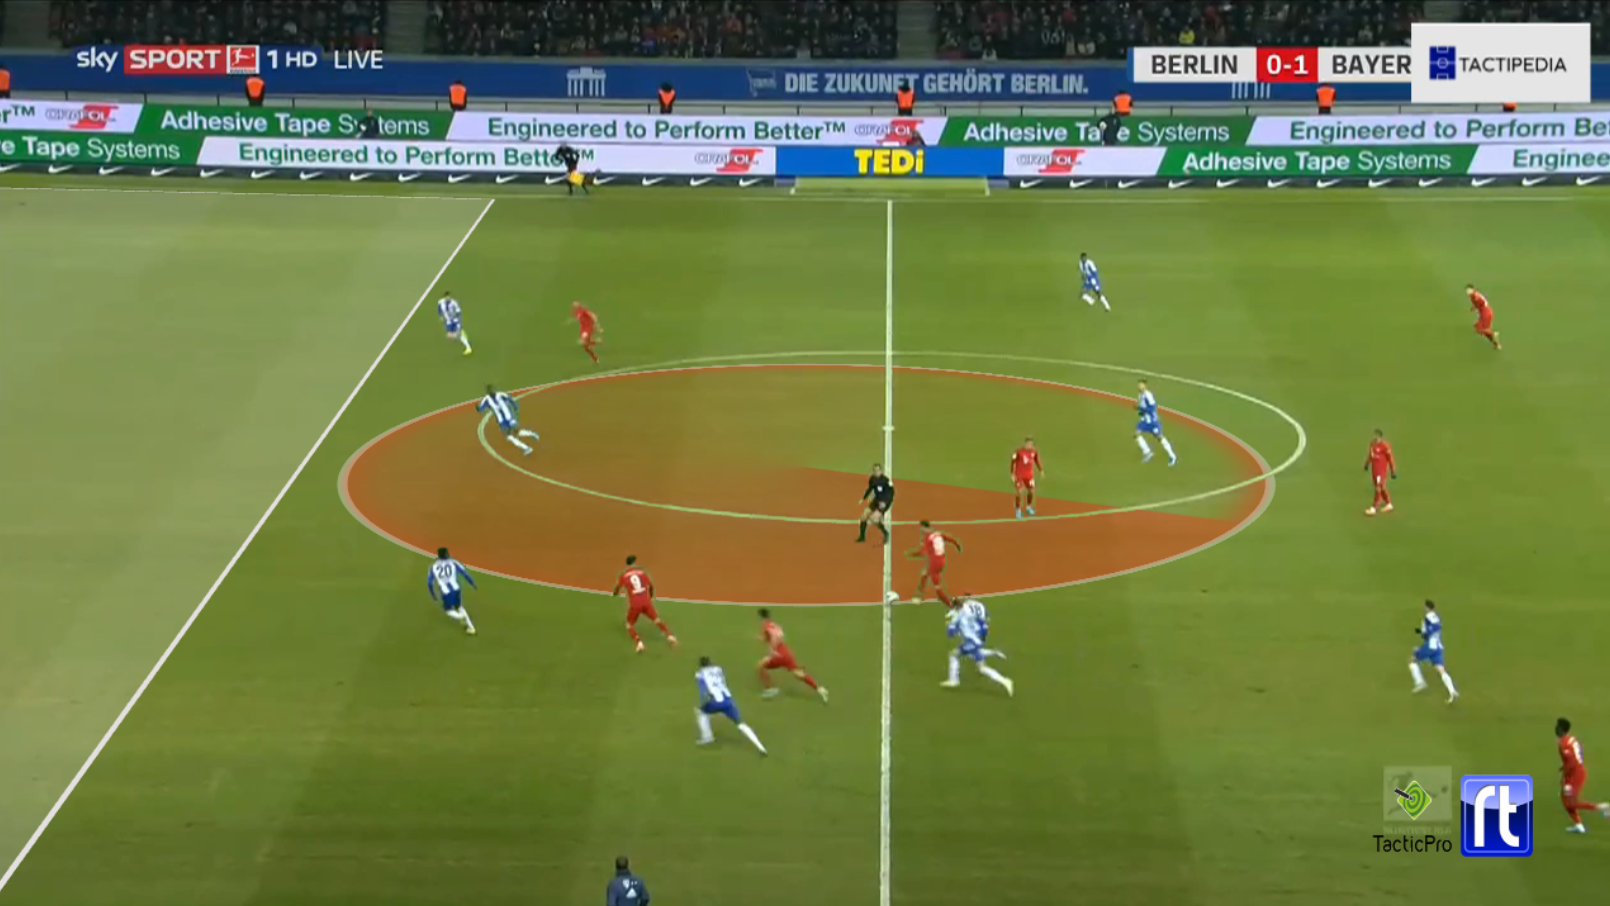 Bundesliga 2019/20: Hertha BSC vs Bayern Munich - tactical analysis tactics